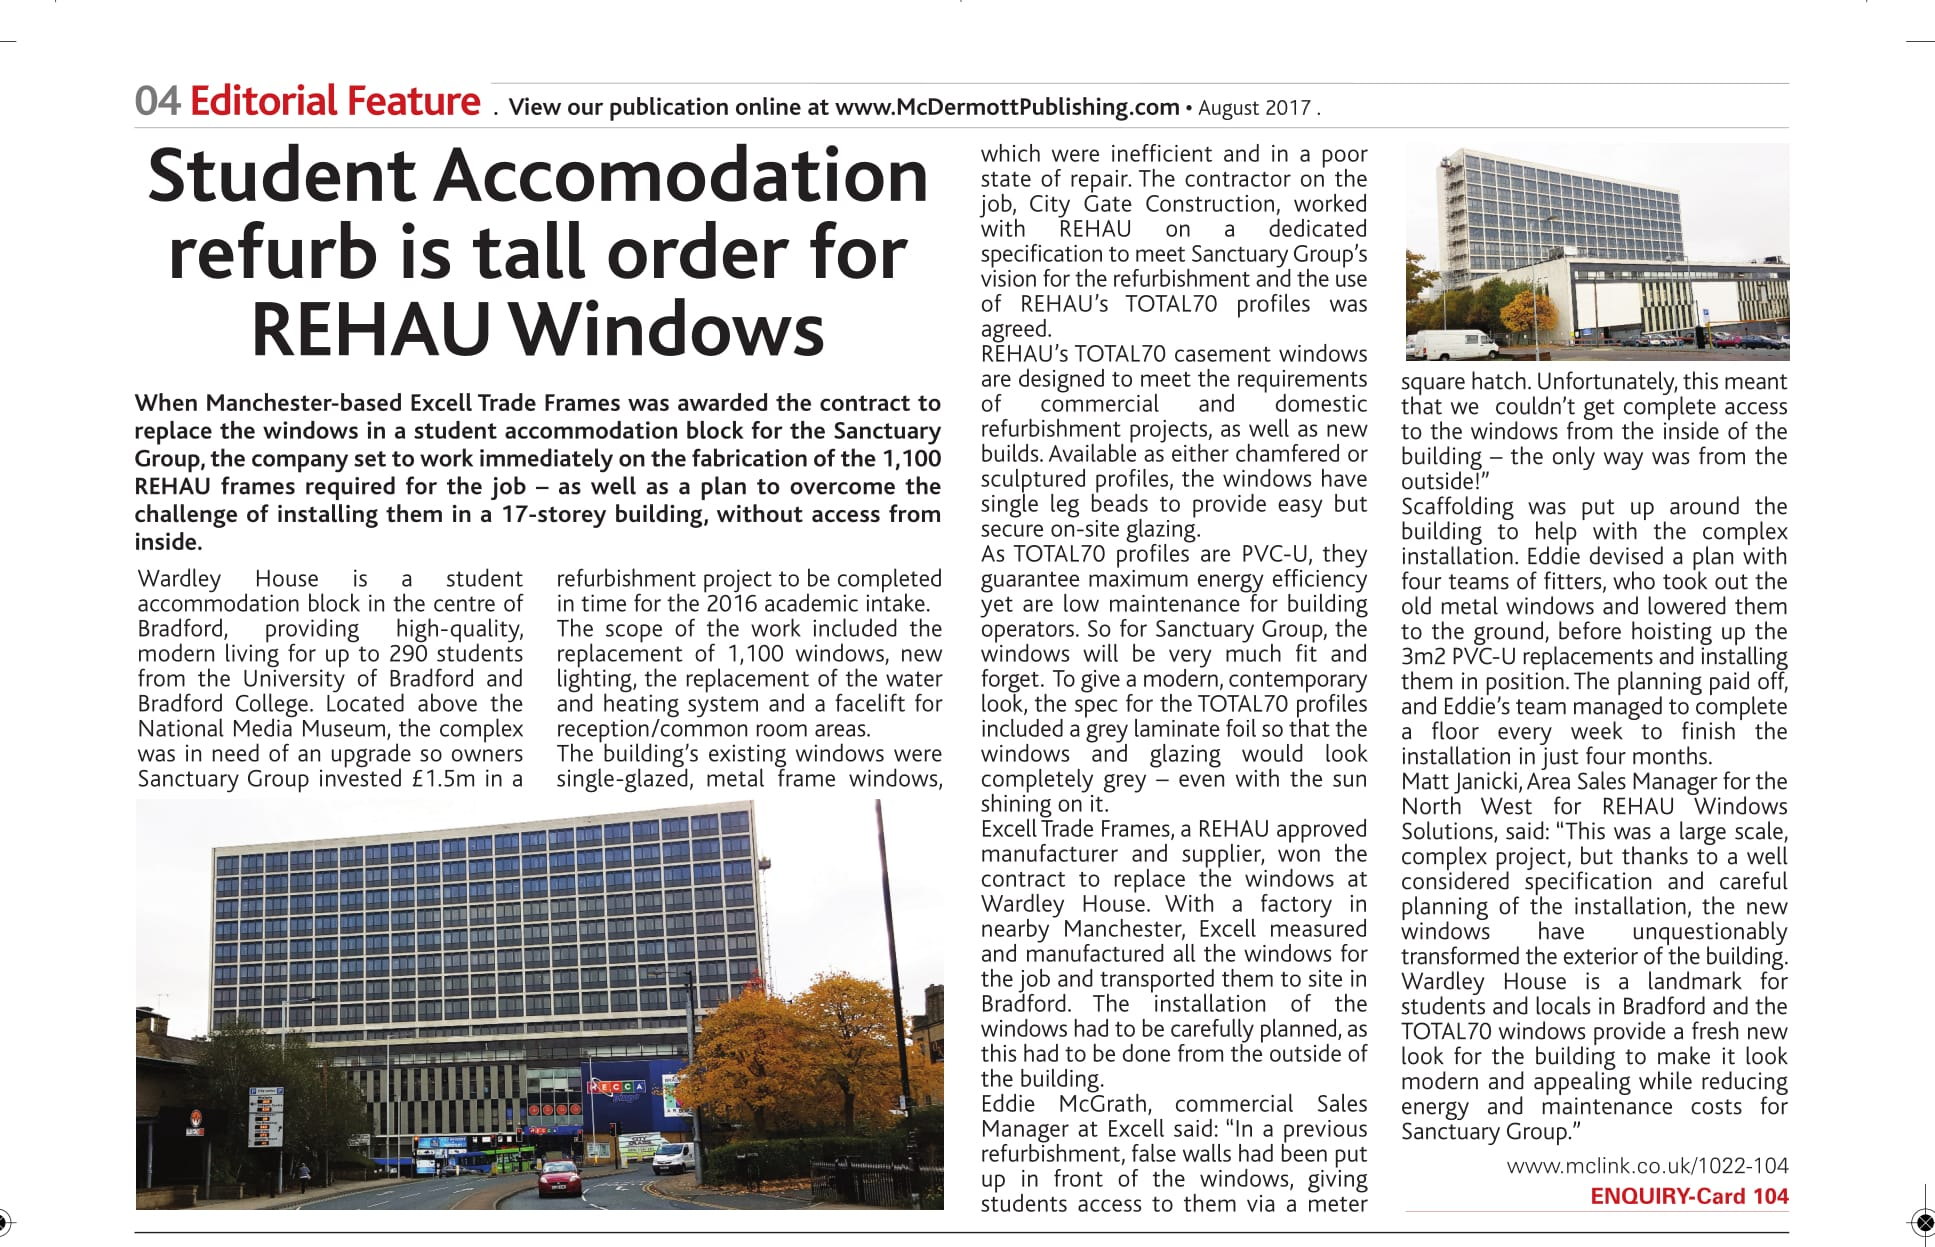 Excell Trade Frames Complete 1,100 Replacement Windows in Student Tower Block